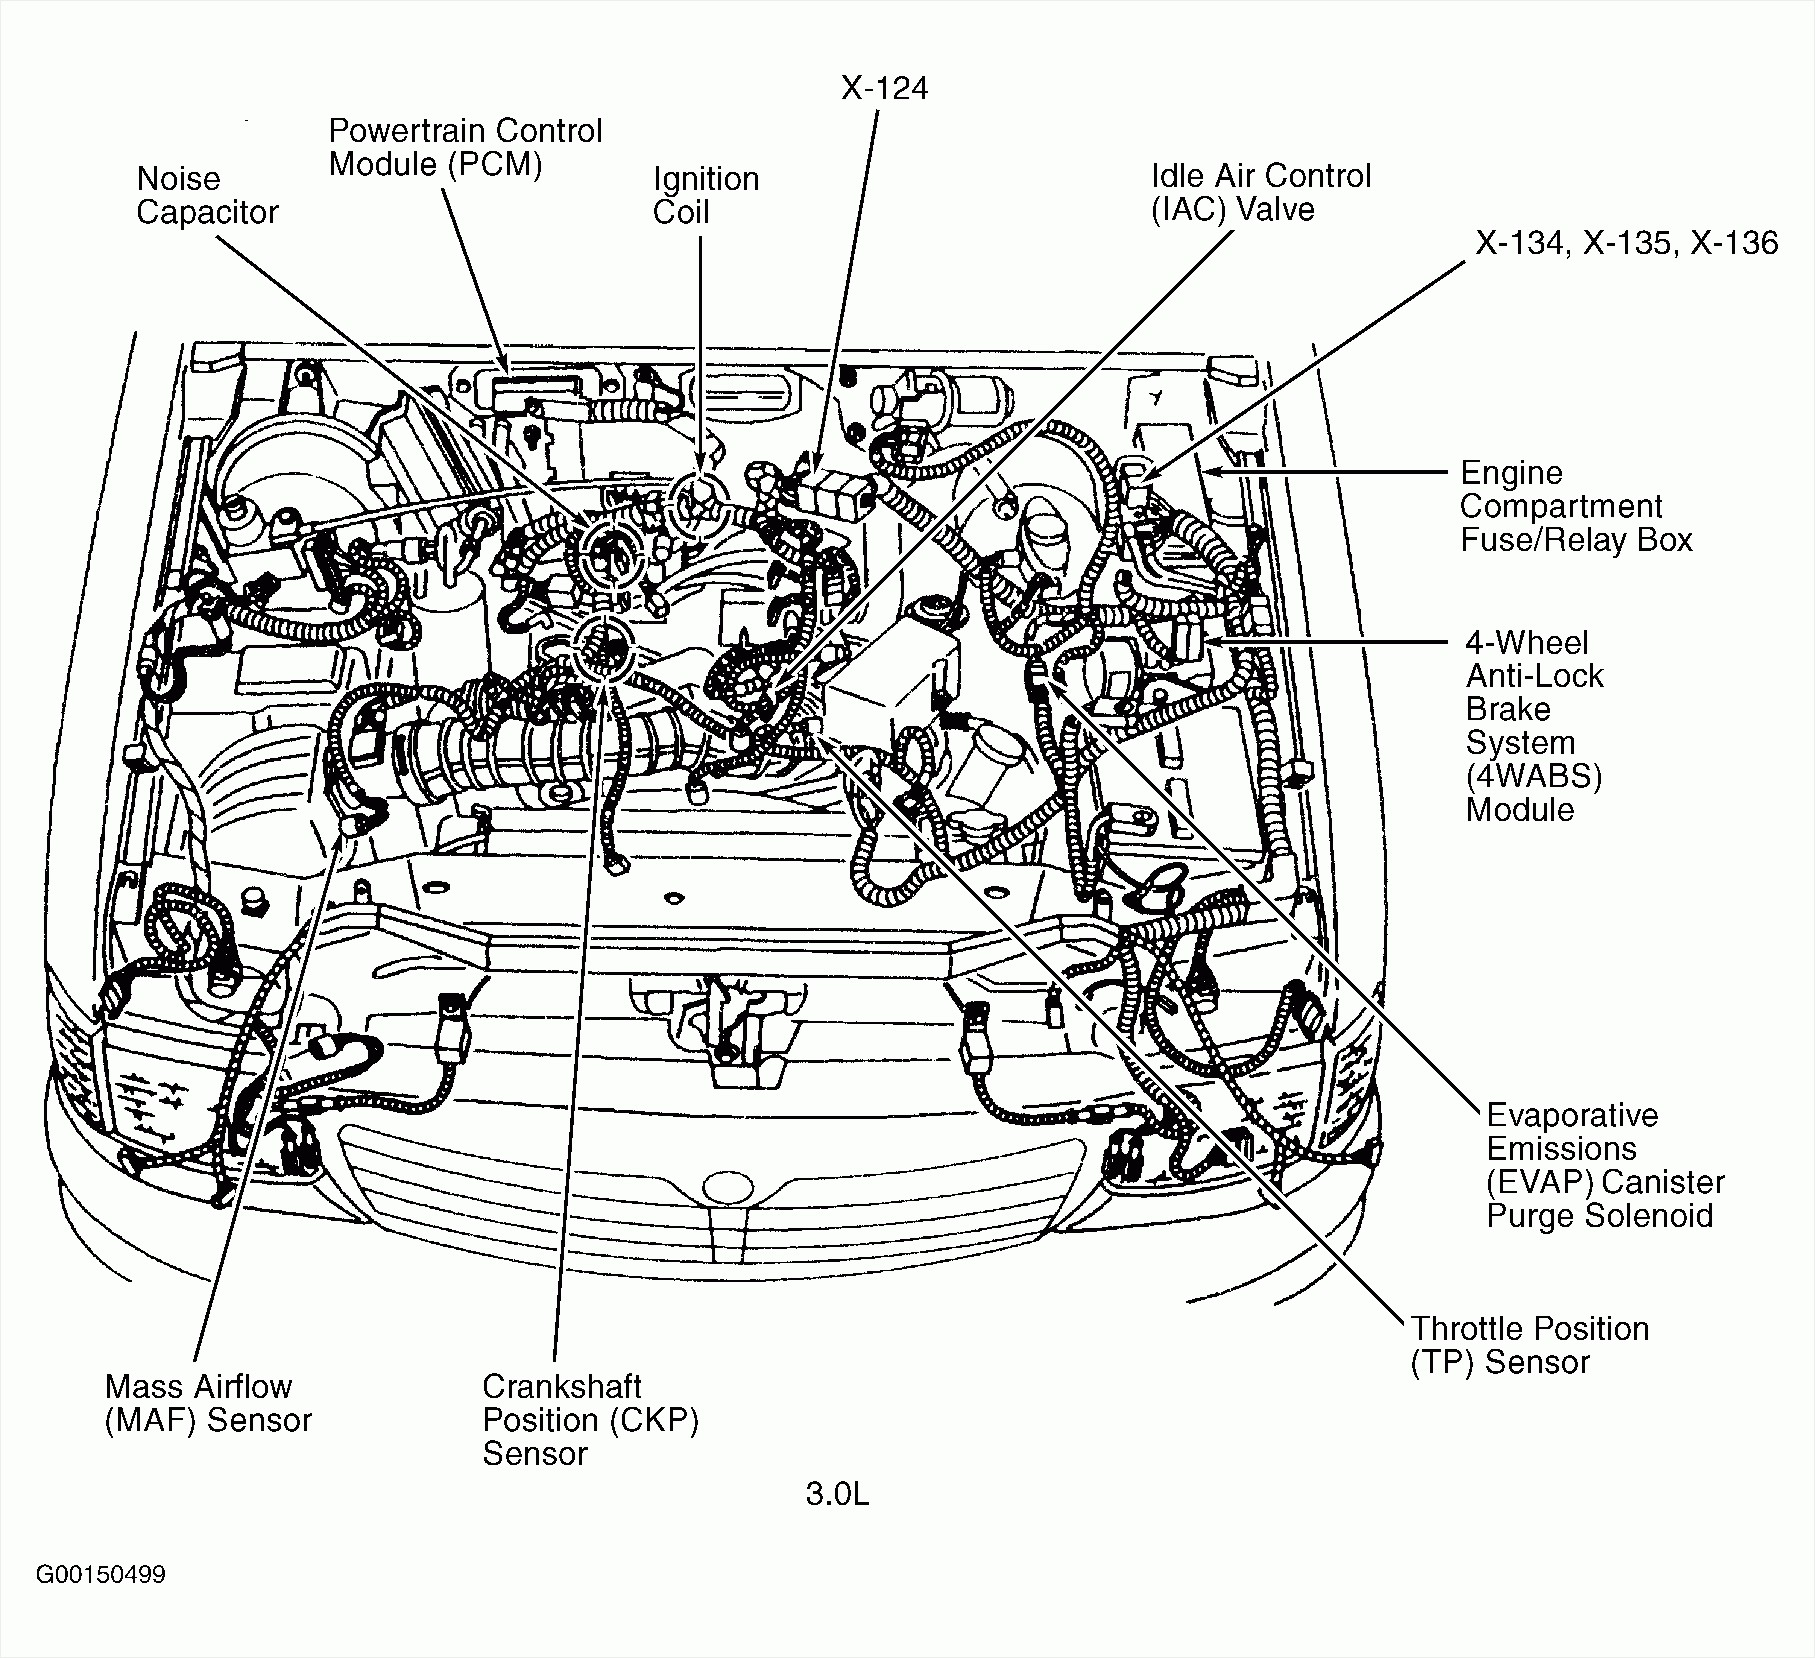 3 0l Ohv Engine Diagram Wiring Library. 1993 Toyota 3 0 V6 Engine Diagram. Wiring. 212cc Ohv Engine Diagram At Scoala.co